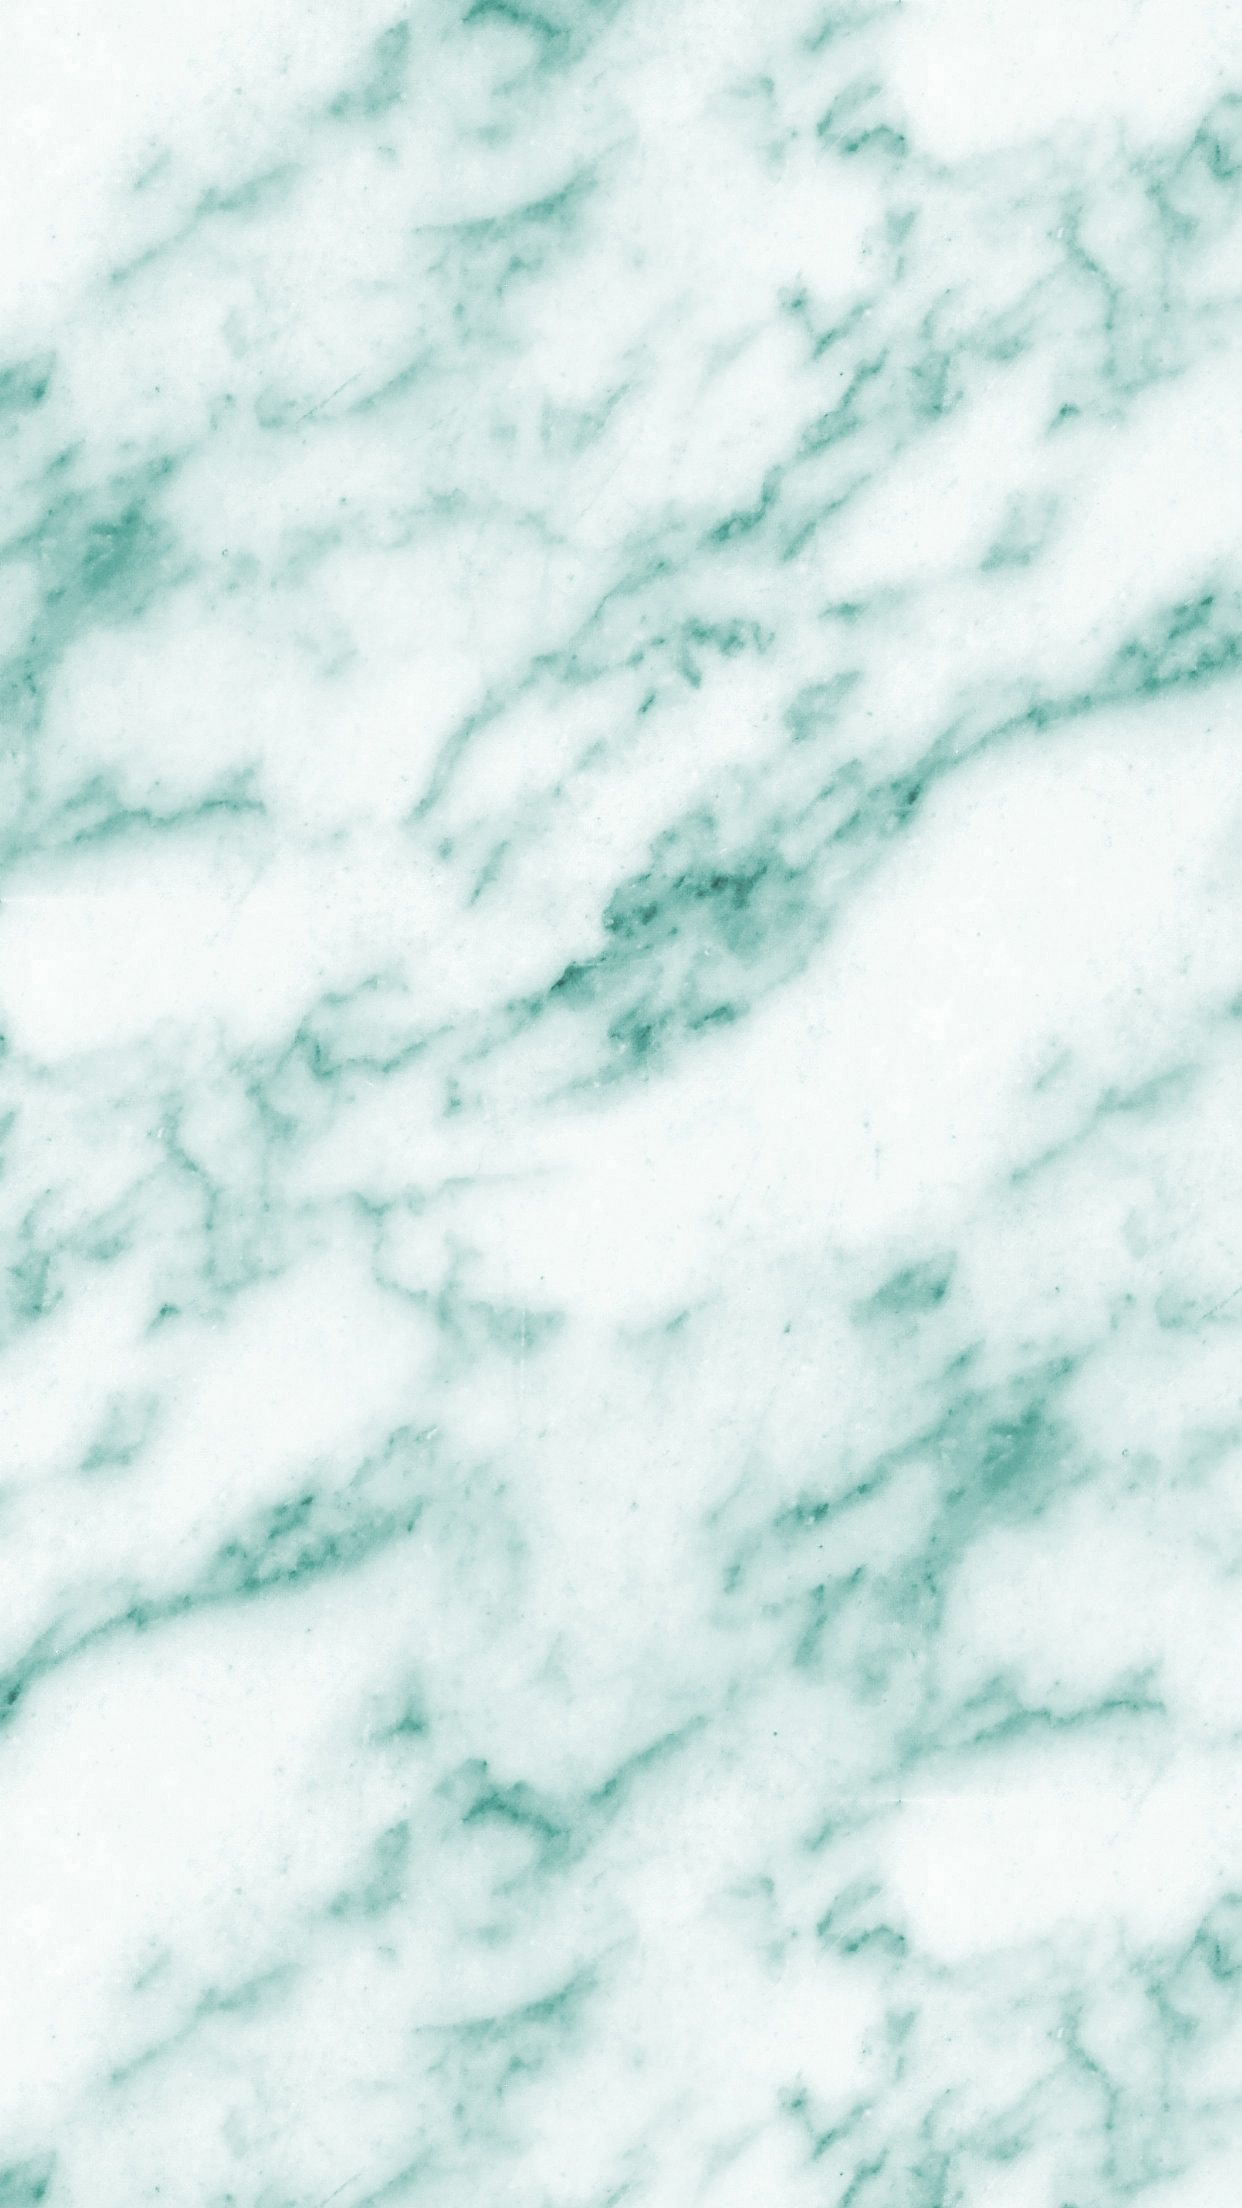 Marble Texture Mobile Phone Wallpaper Marble Wallpaper Phone